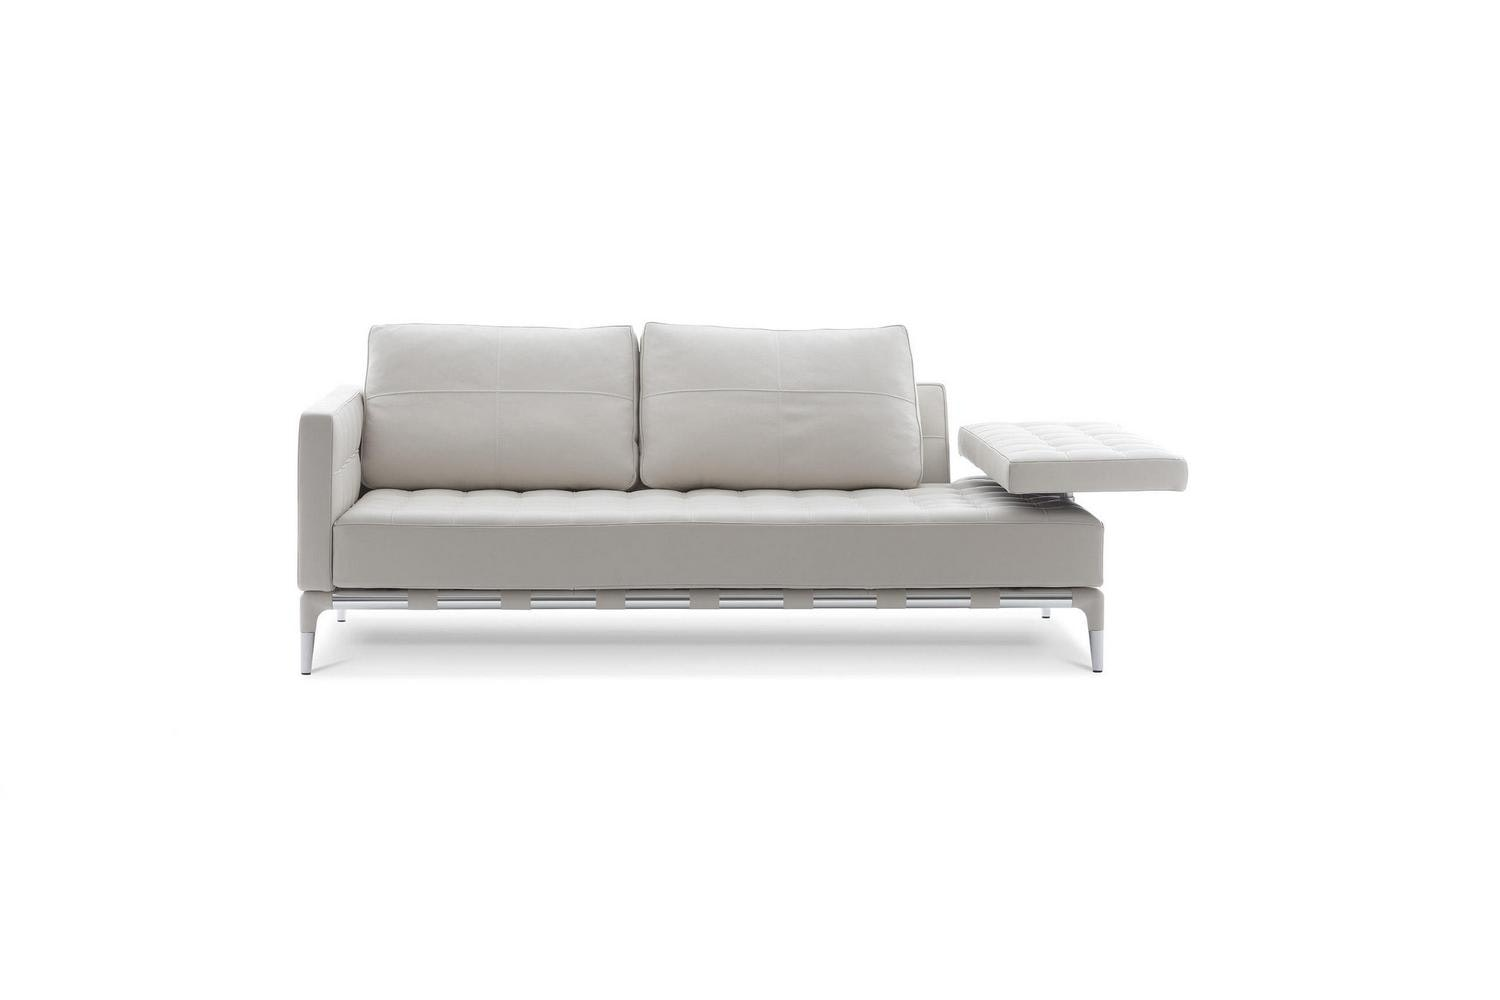 241 Prive Sofa by Philippe Starck for Cassina